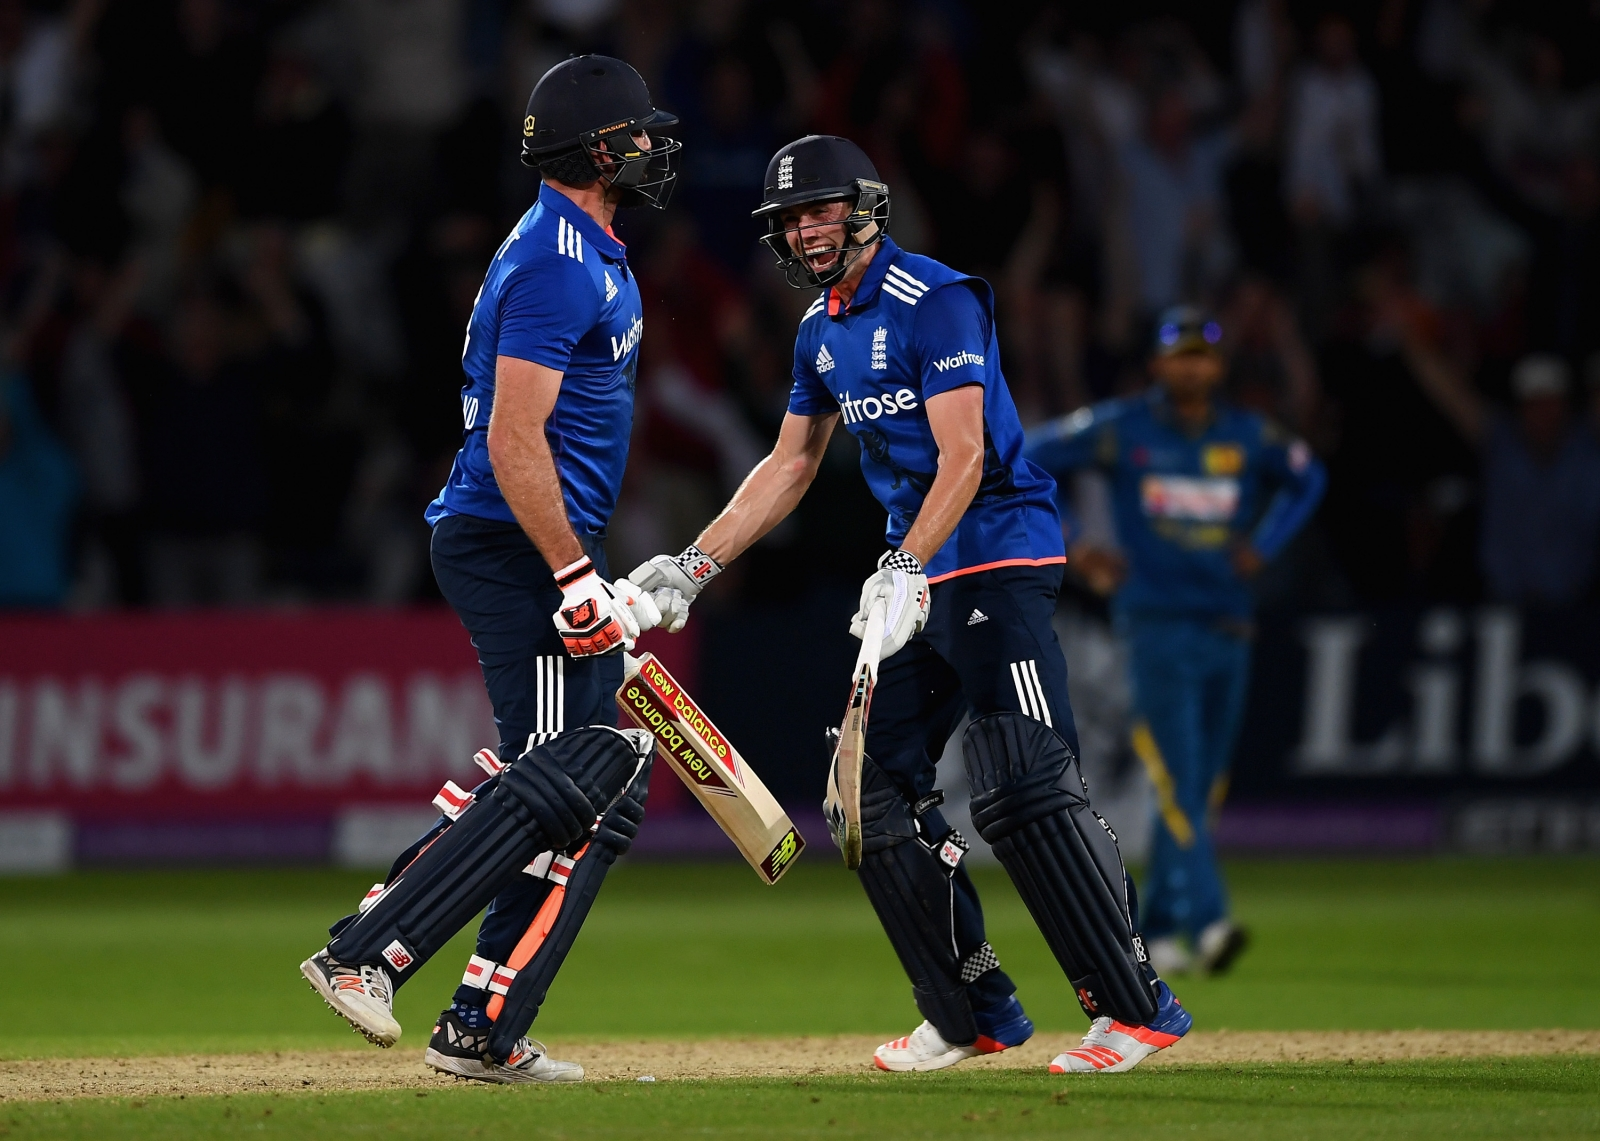 Liam Plunkett and Chris Woakes celebrate